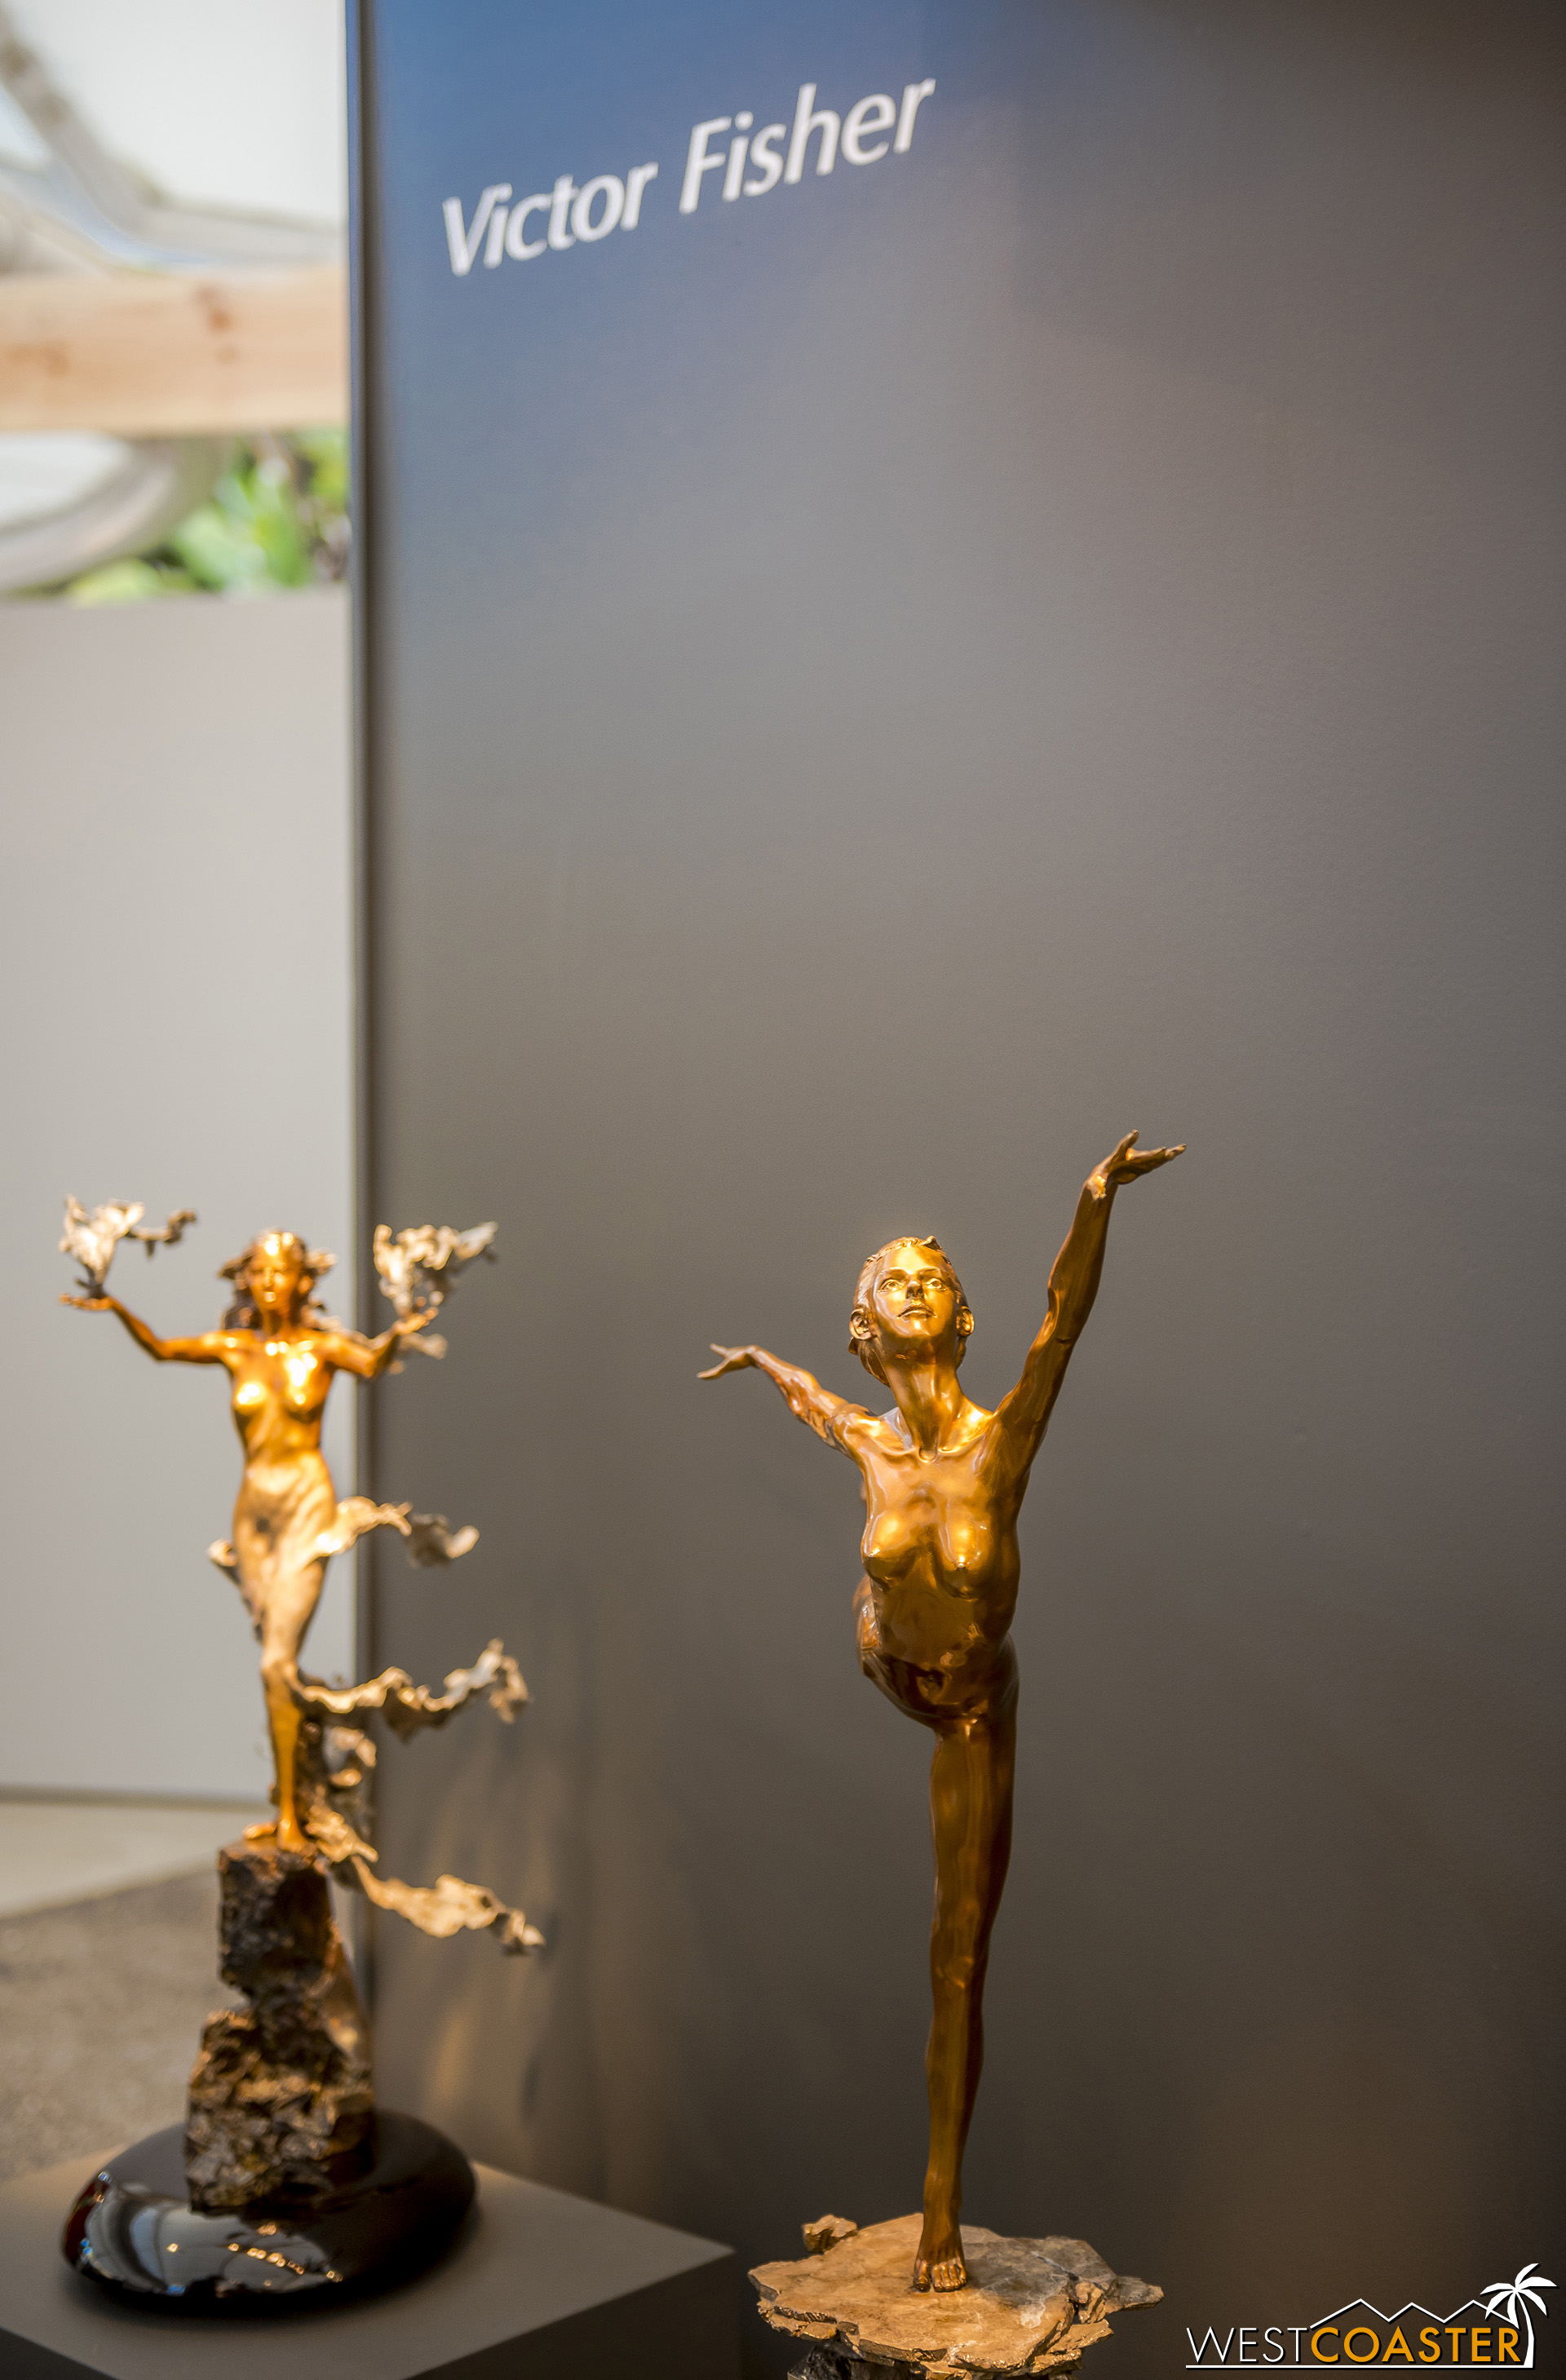 Victor Fisher is a sculptor who uses bronze as his medium.